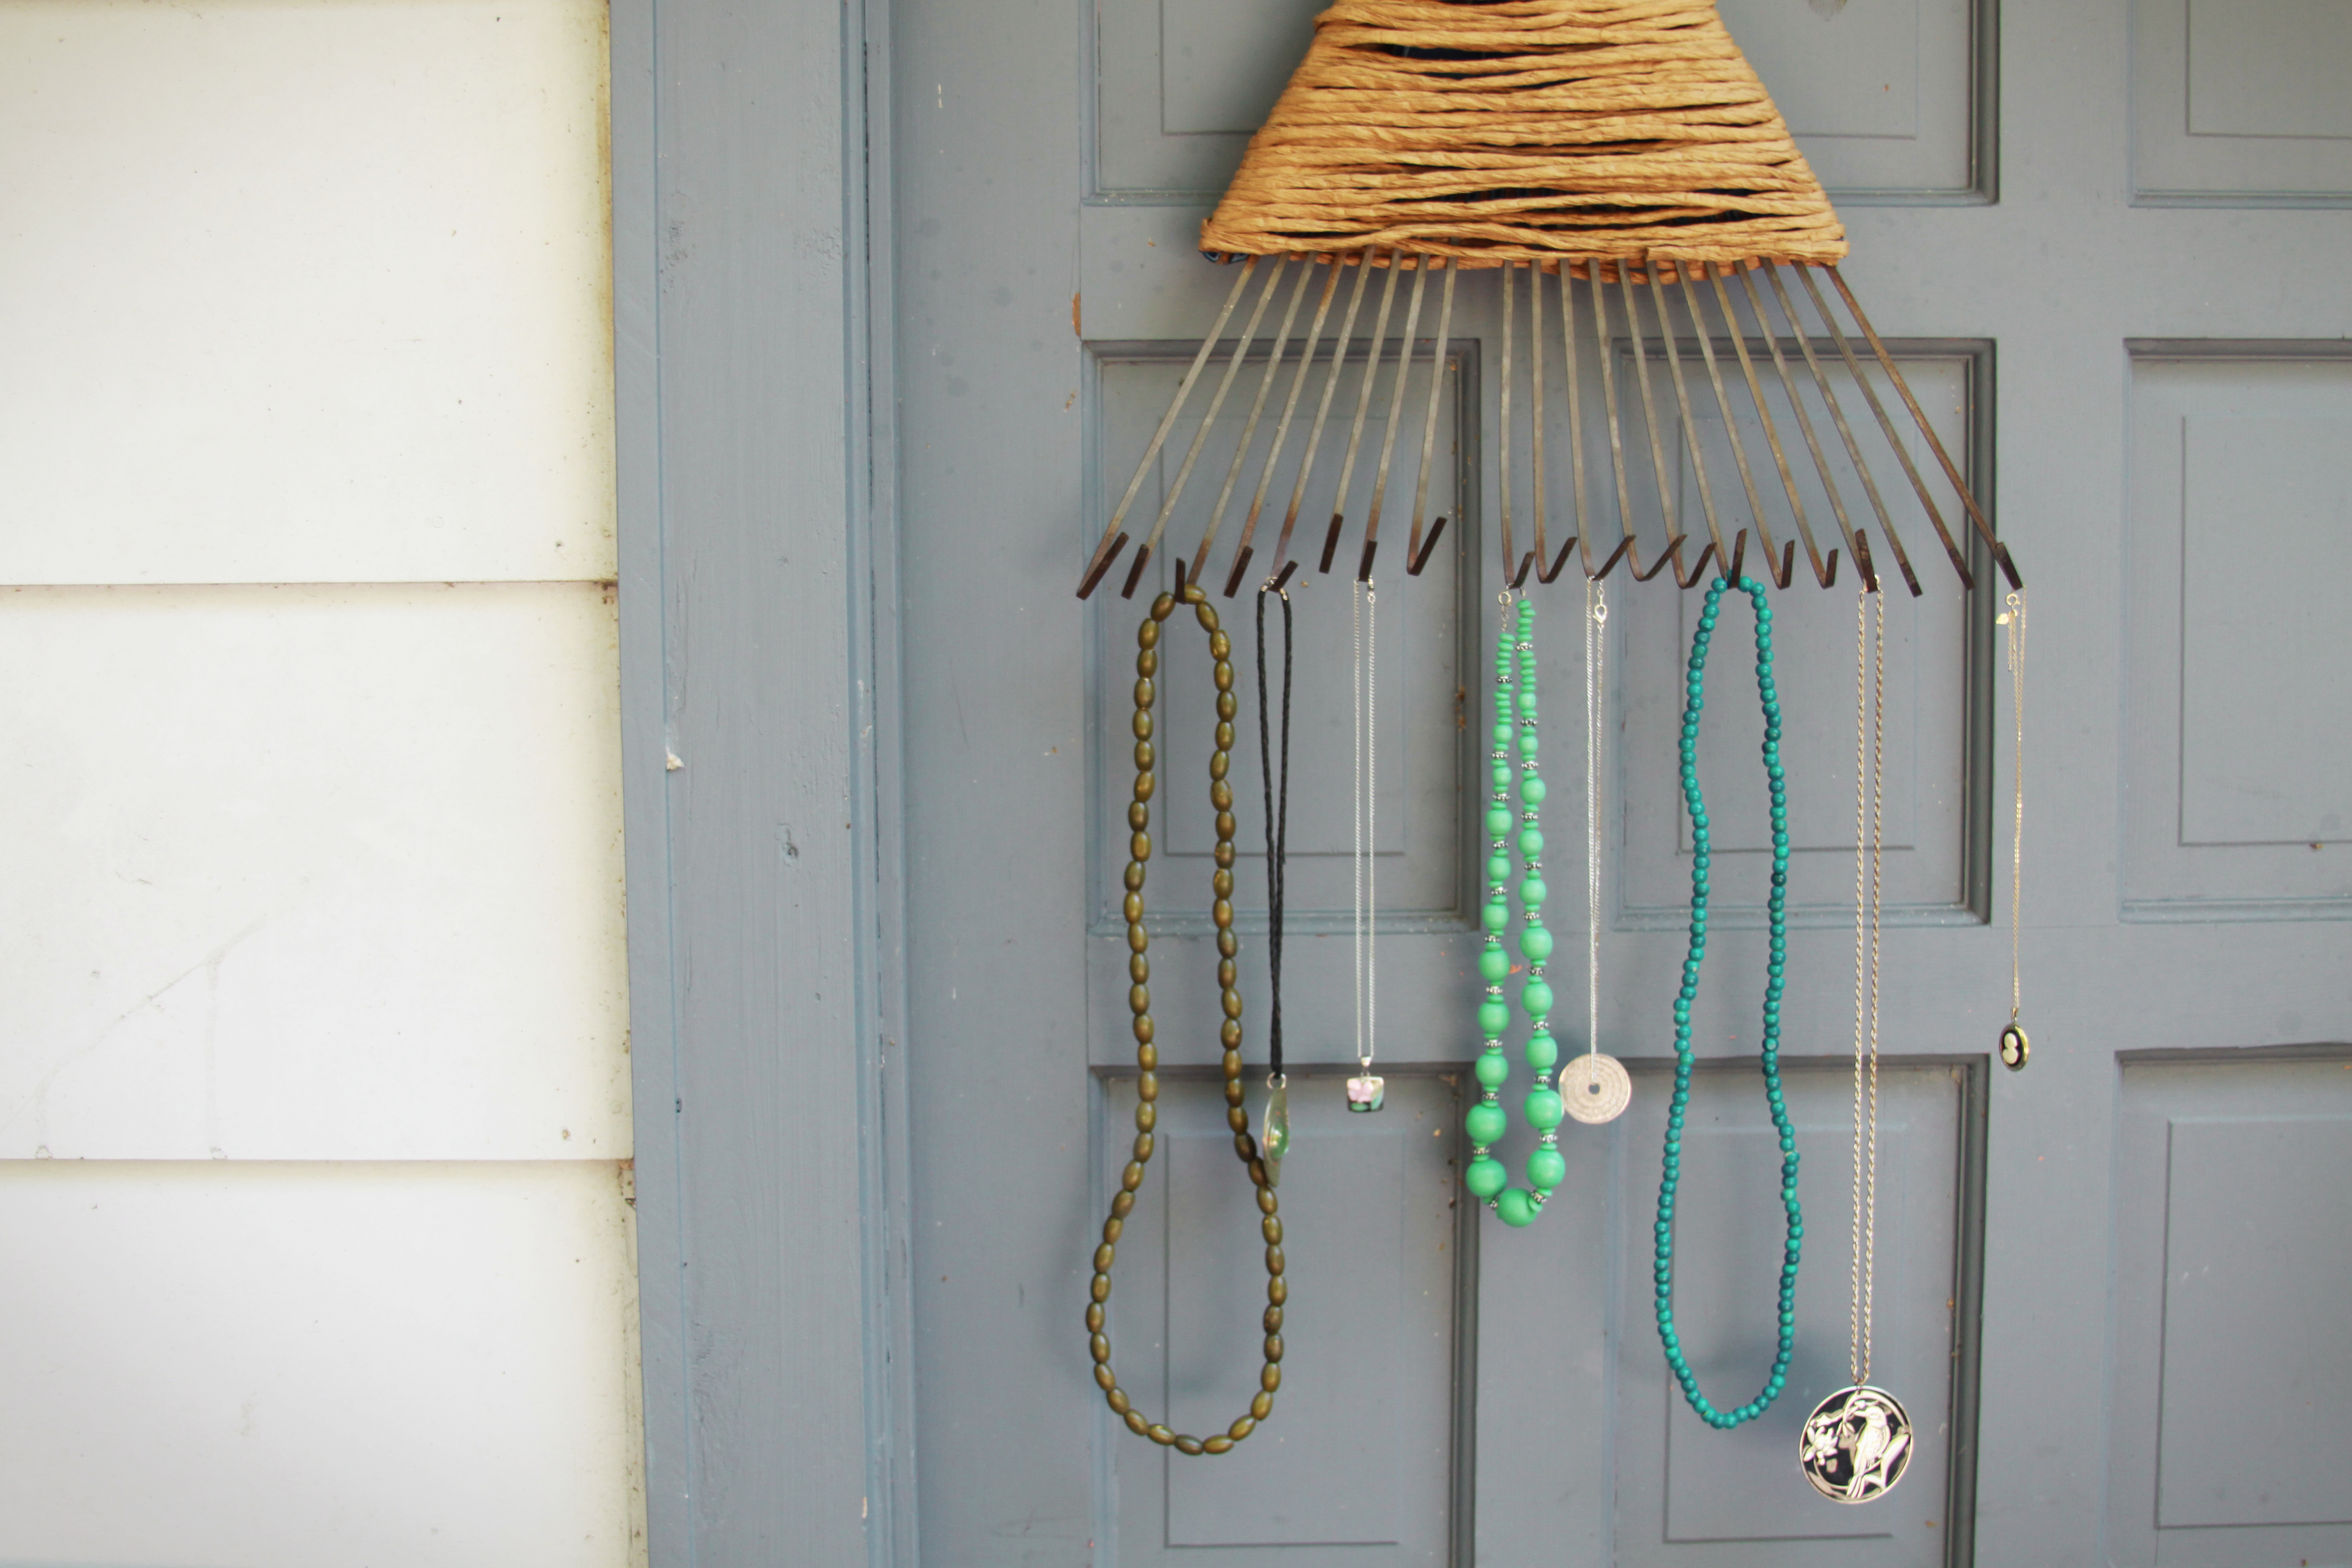 17 Outstanding Ways To Keep Your Necklaces Organized